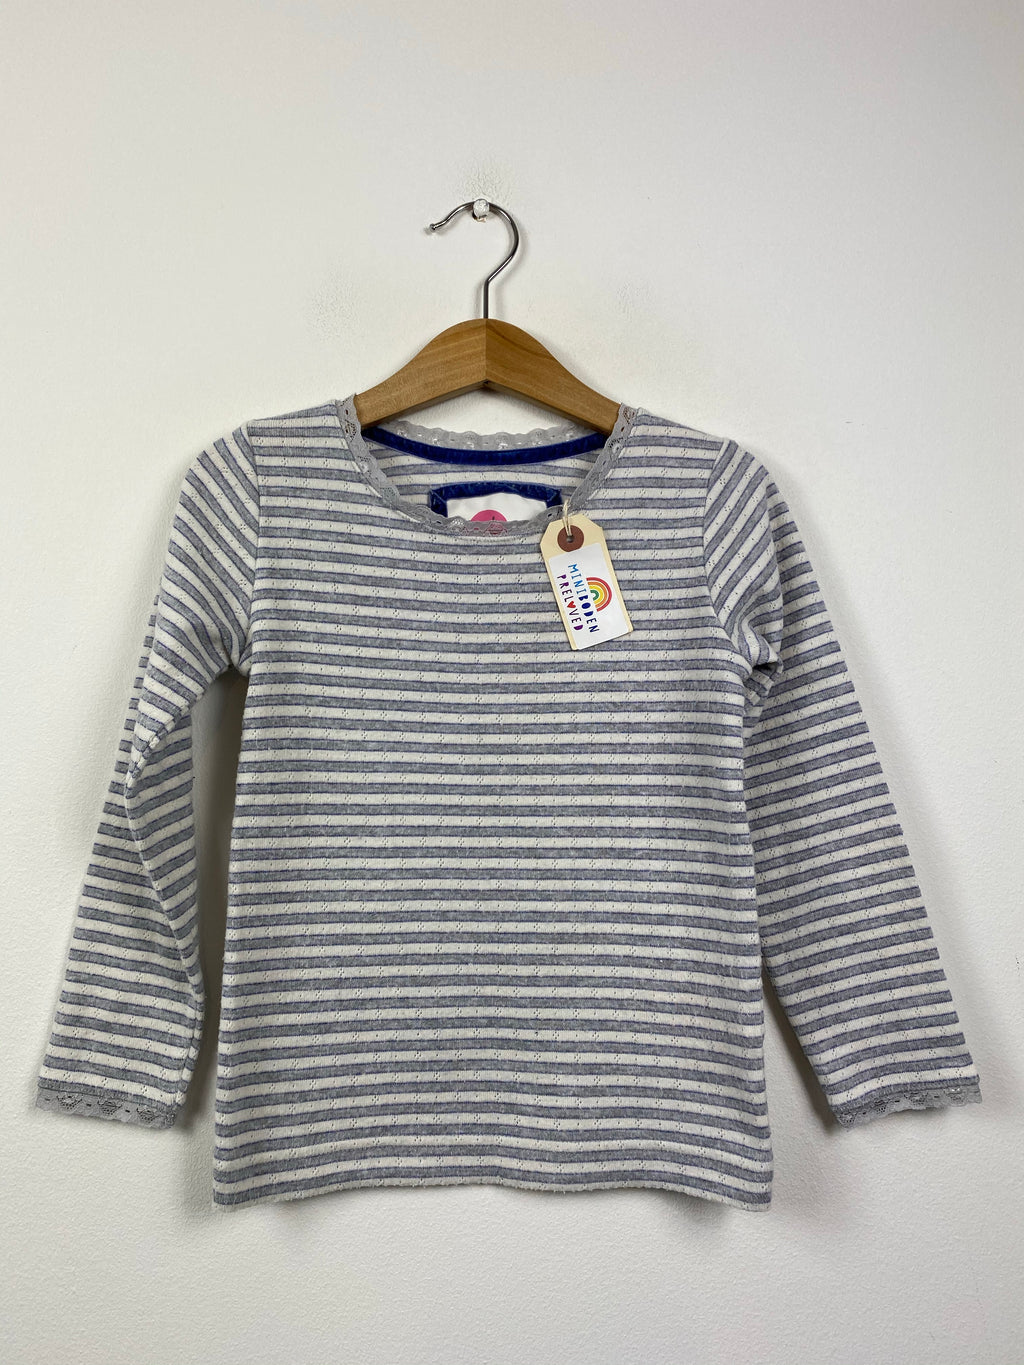 Grey Stripy Pointelle Top (4-5 Years)